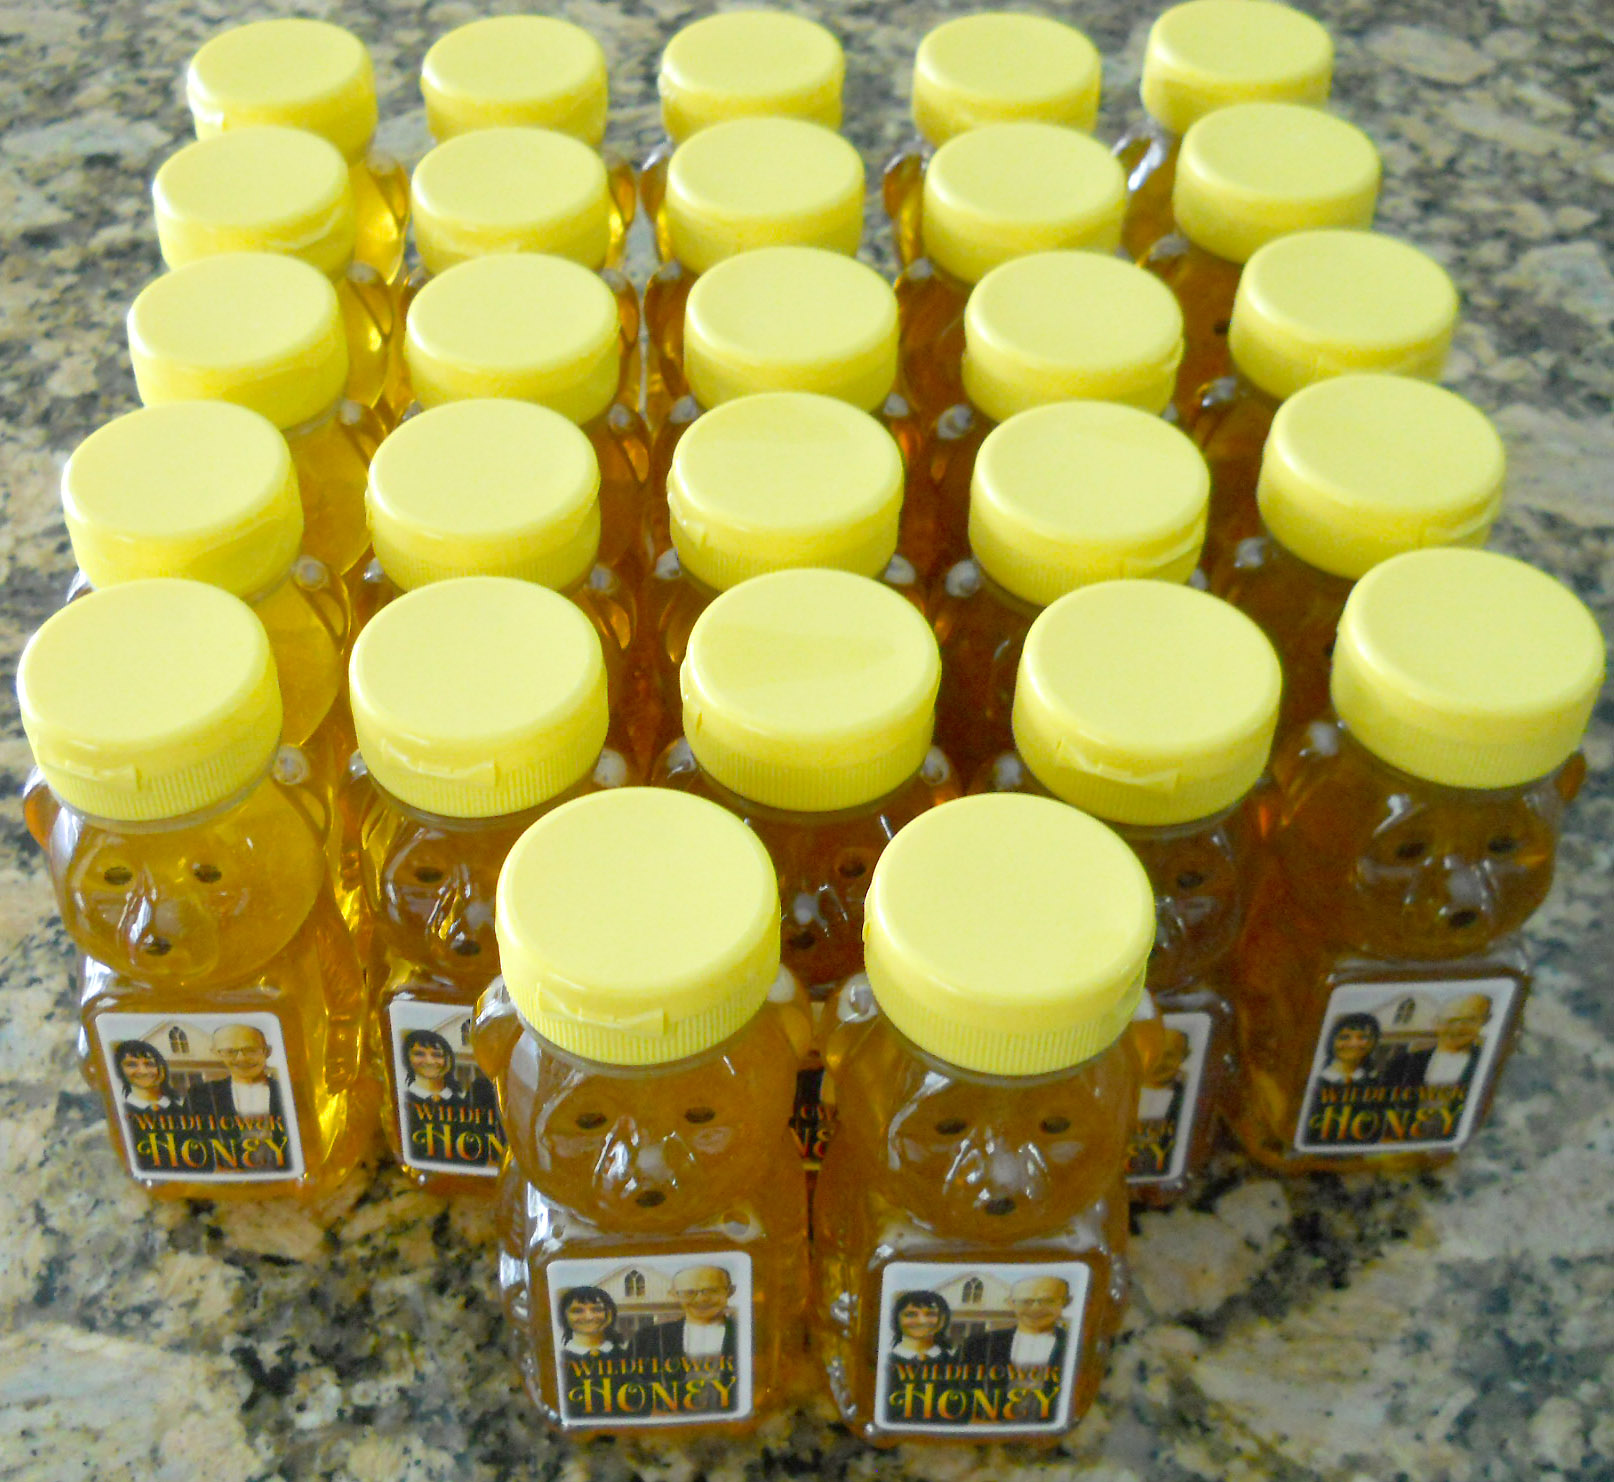 May 28, 2015 honey harvest